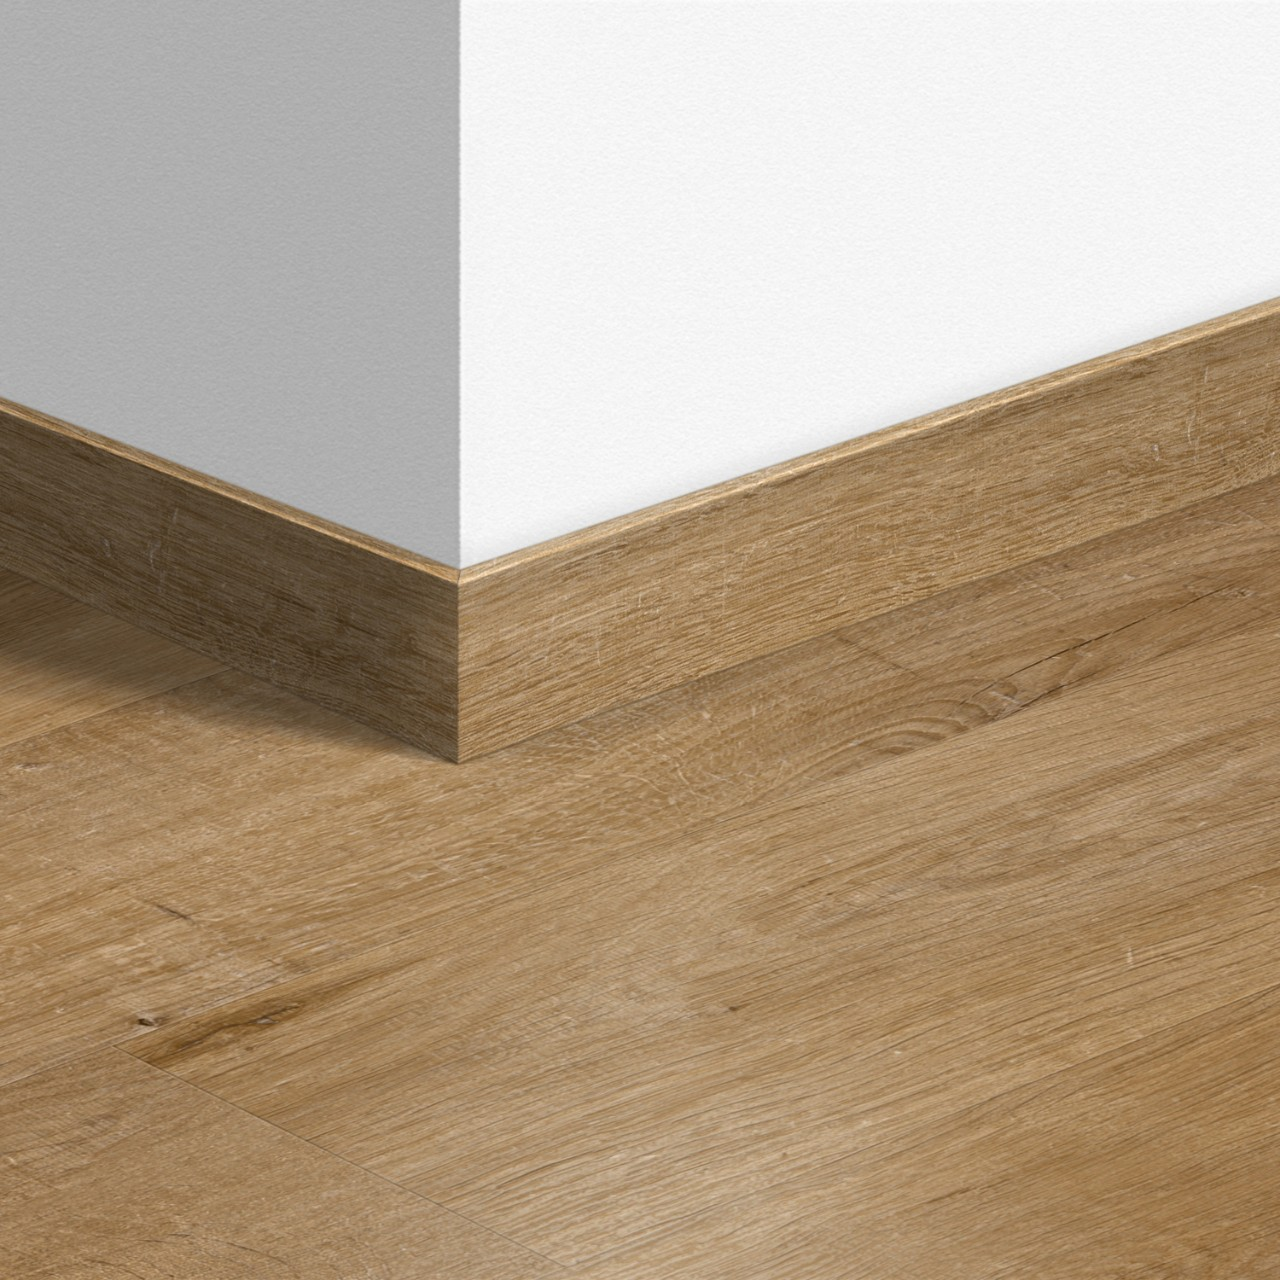 QSVSKRB Vinyl Accessories Cotton oak natural QSVSKRB40104